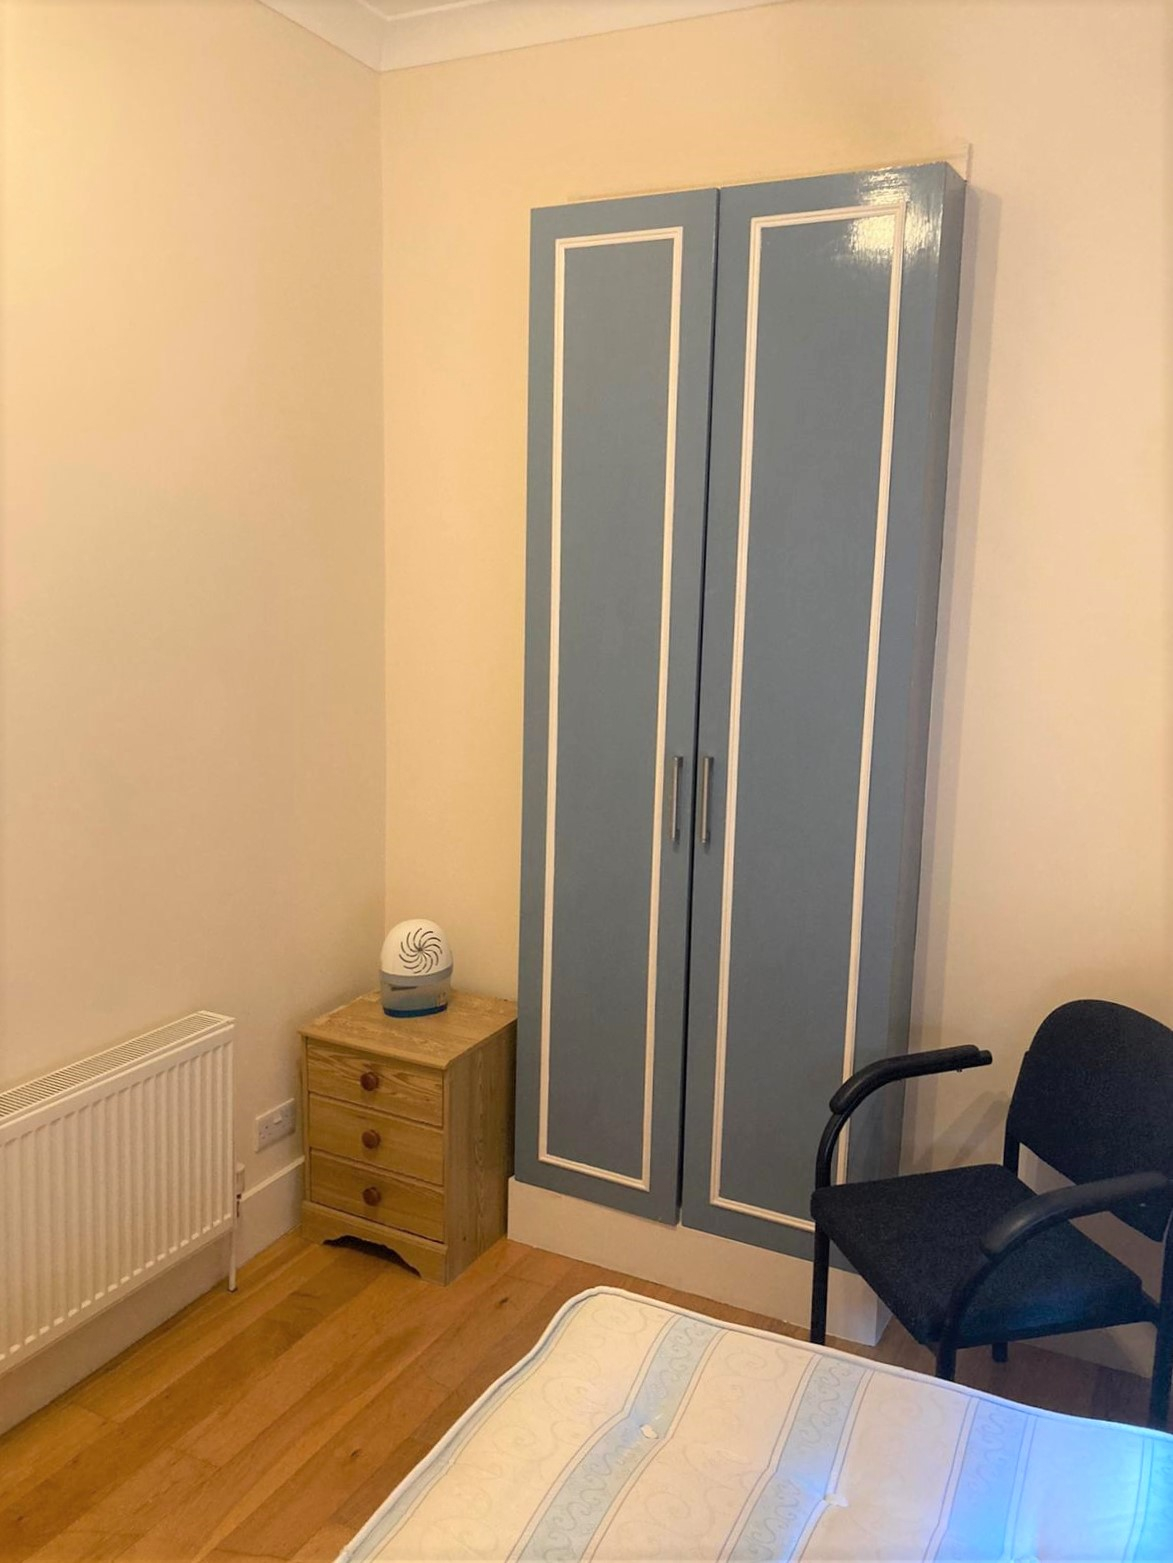 1 bed flat to rent in North End Road, West Kensington, Flat 5